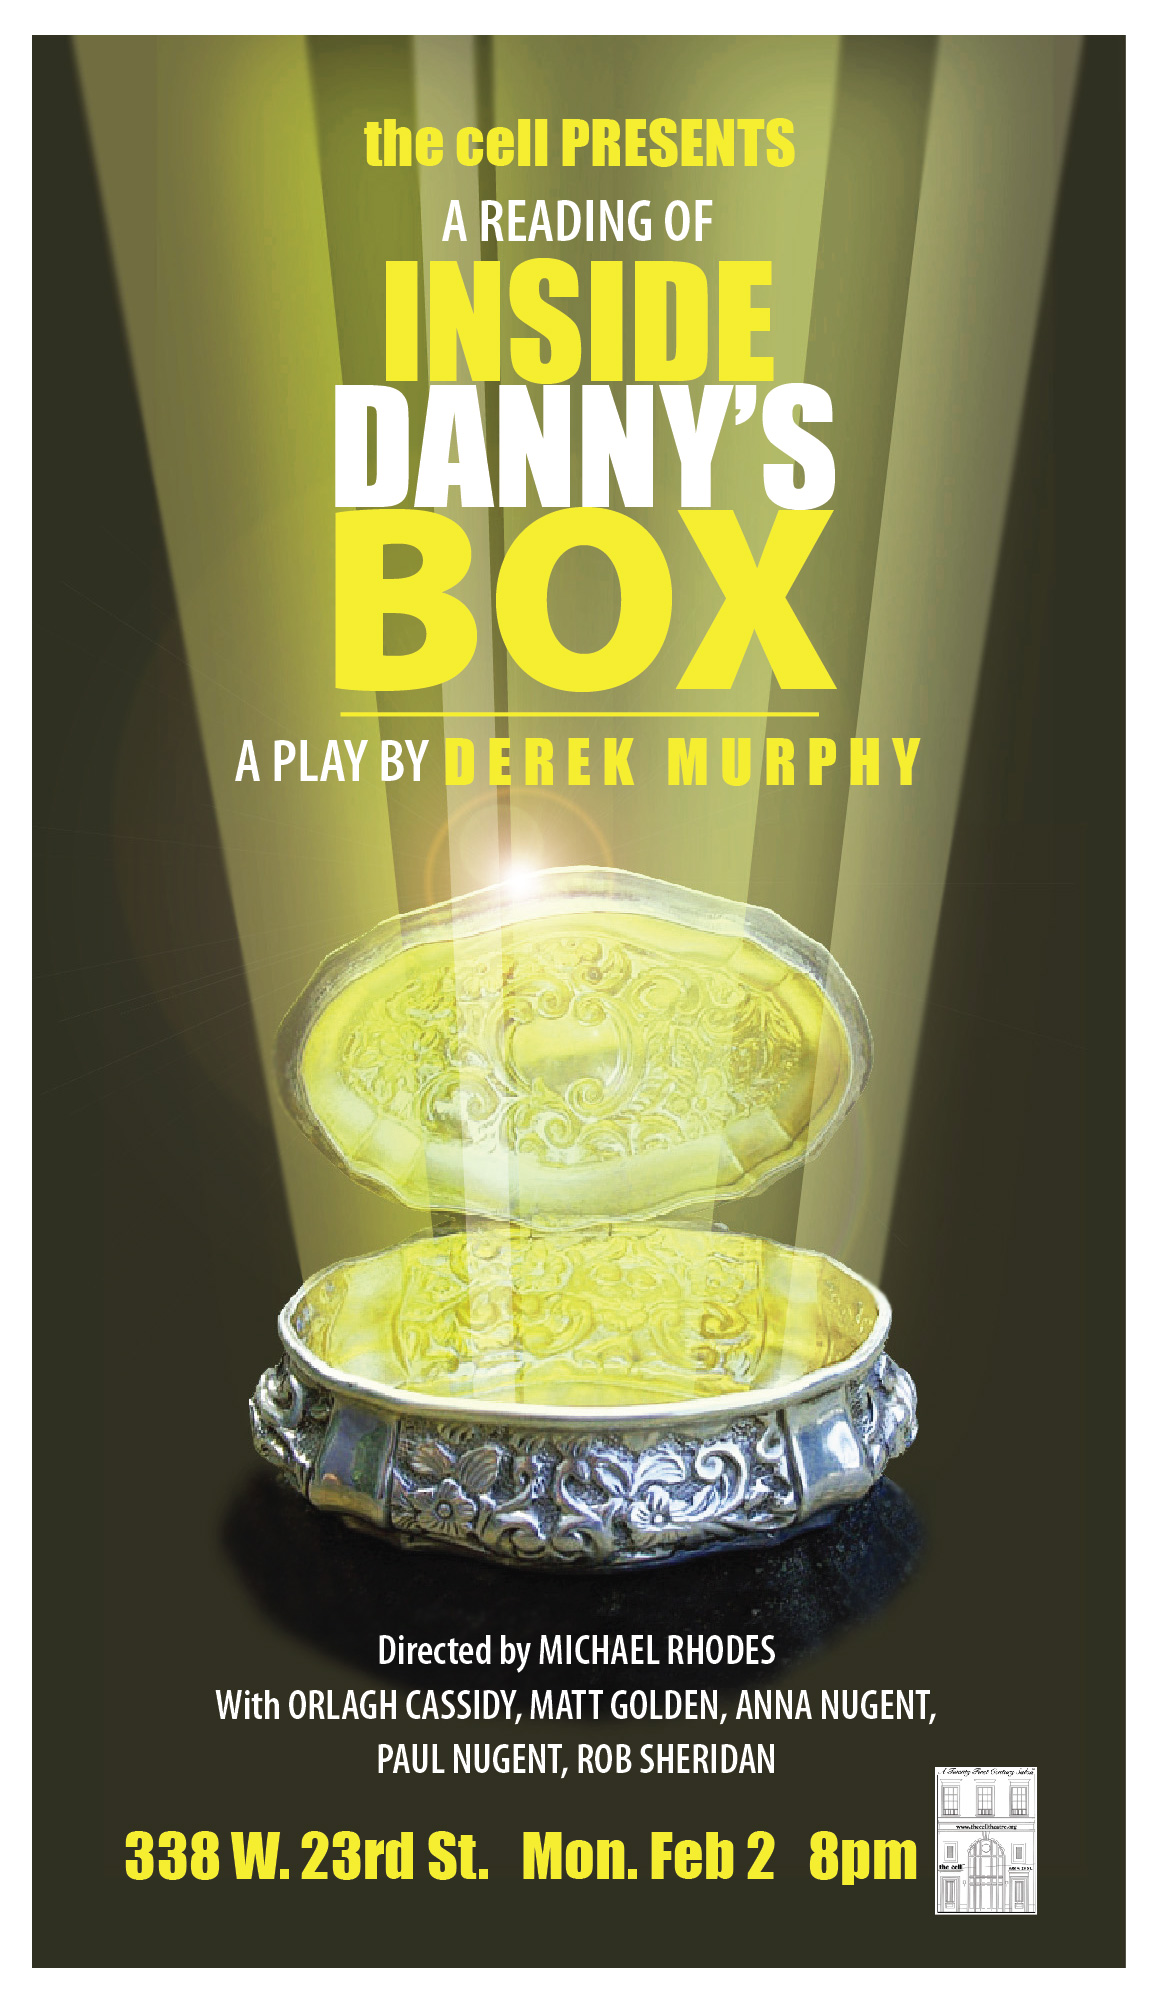 """A reading of Derek Murphy's new play """"Inside Danny's Box,"""" an Irish black comedy about love and lust, secrets and lies, family treasures and a little sacrilege, in a small Irish town.Starring Orlagh Cassidy, Matt Golden, Anna Nugent, Paul Nugent and Rob Sheridan."""